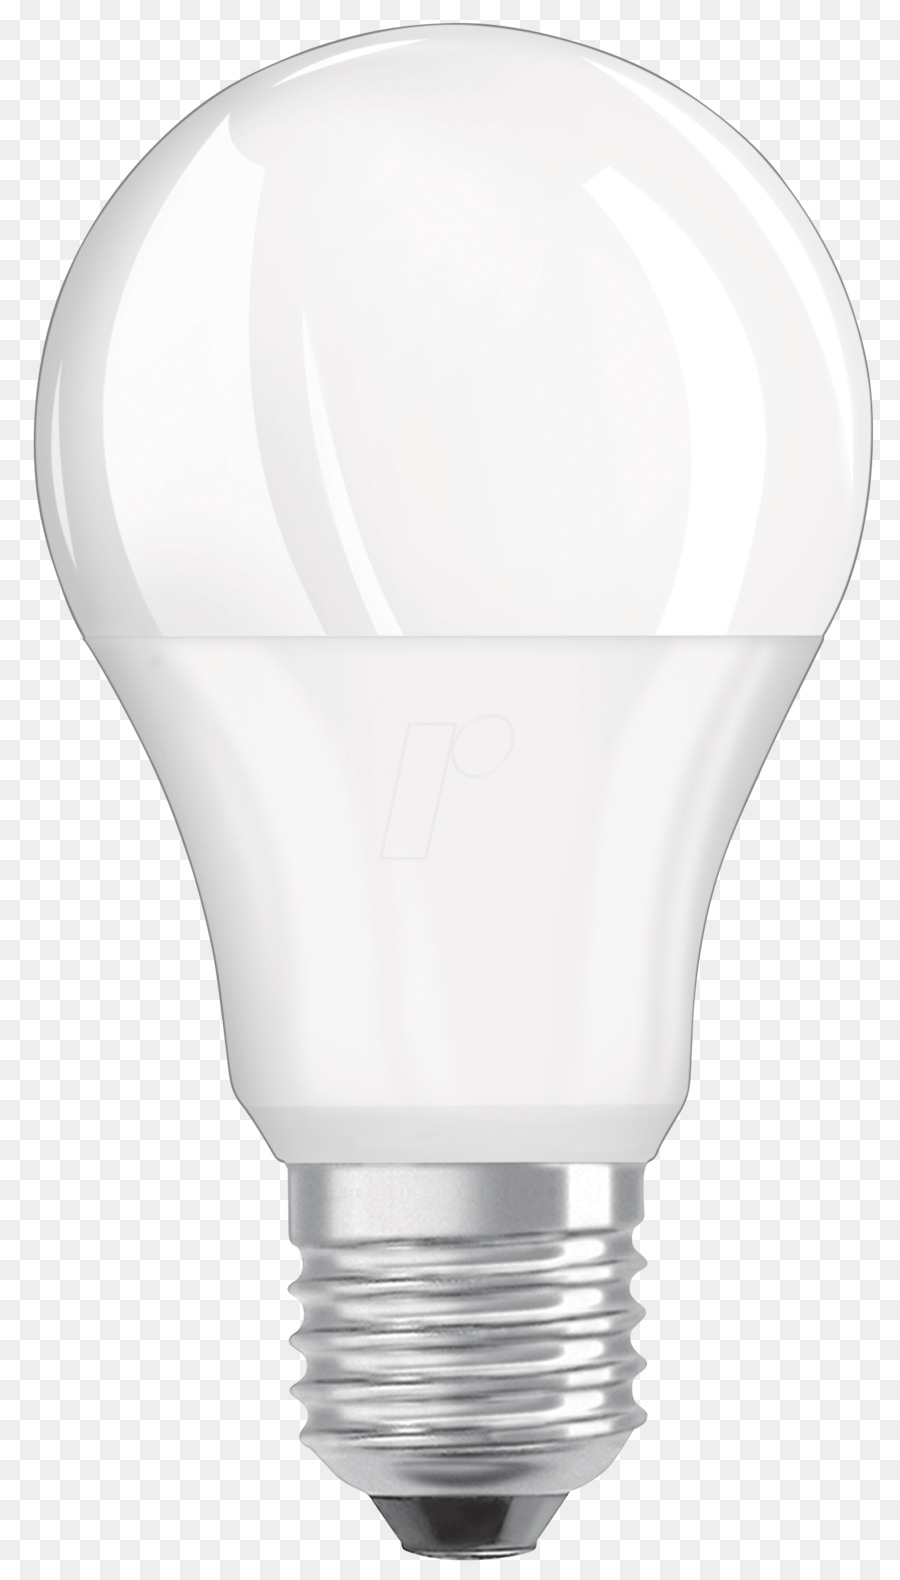 light bulb cartoon png download 1488 2595 free transparent led lamp png download cleanpng kisspng light bulb cartoon png download 1488